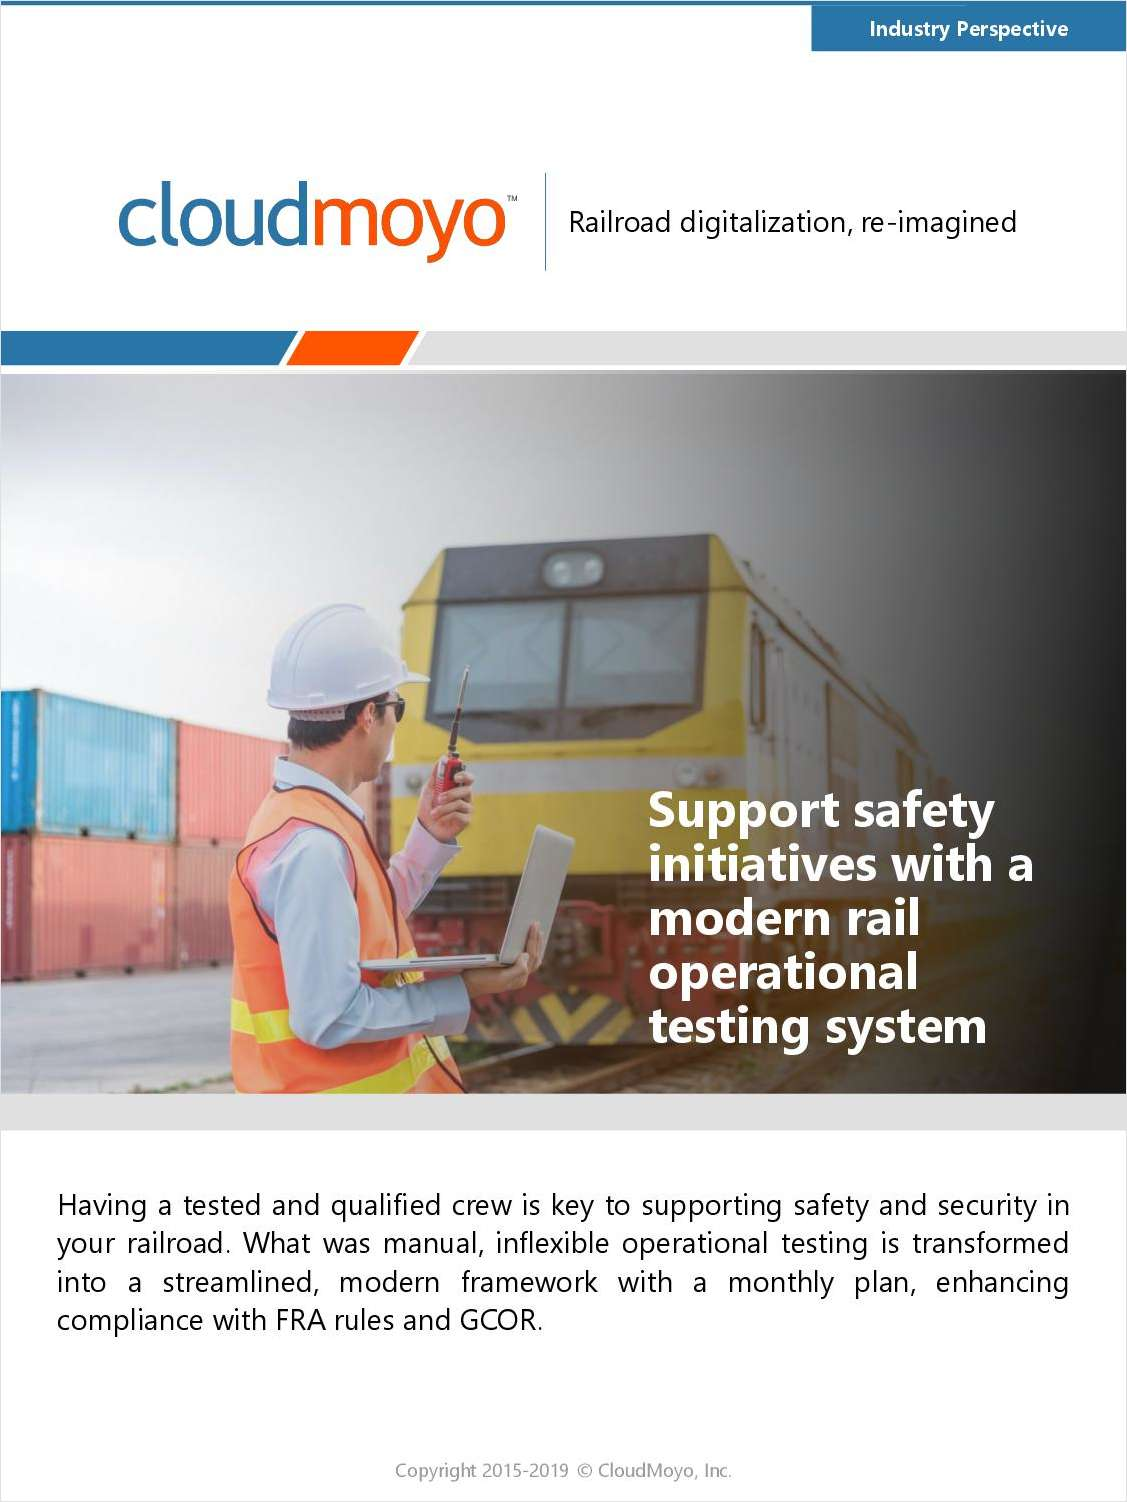 Support Your Safety Initiatives with a Modern Operational Testing System